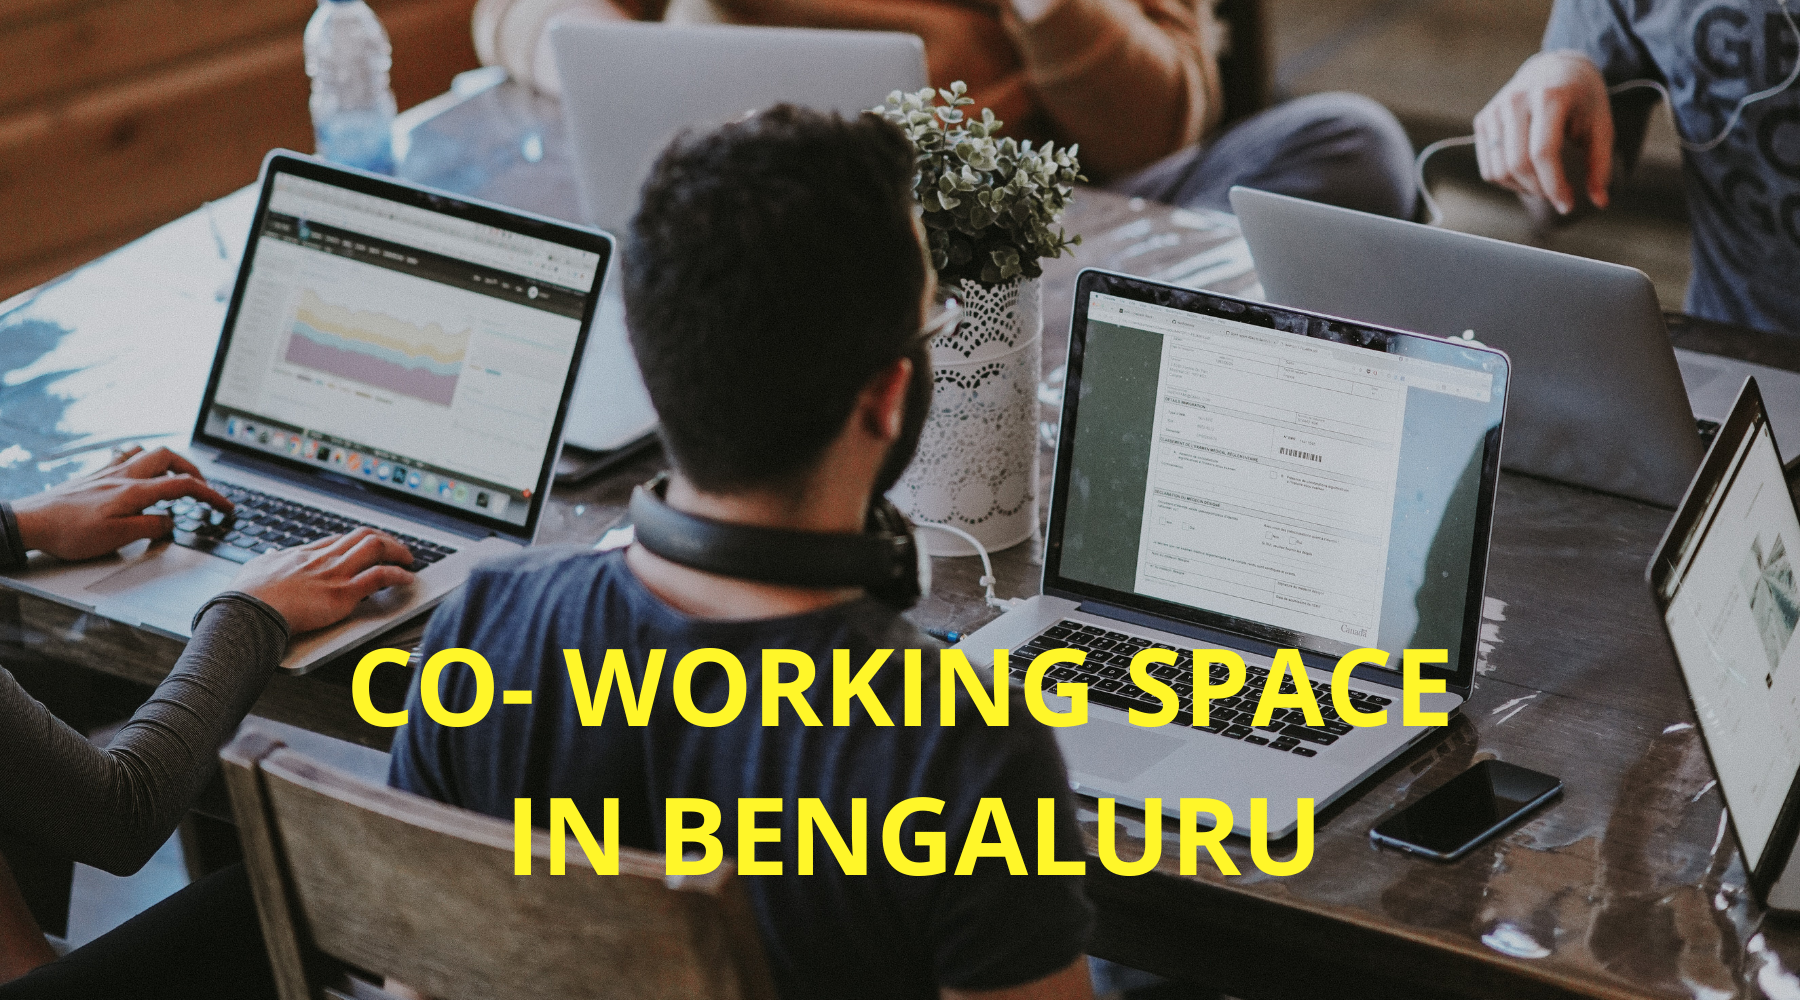 The Top Co-working Spaces in Bengaluru for Your Startup